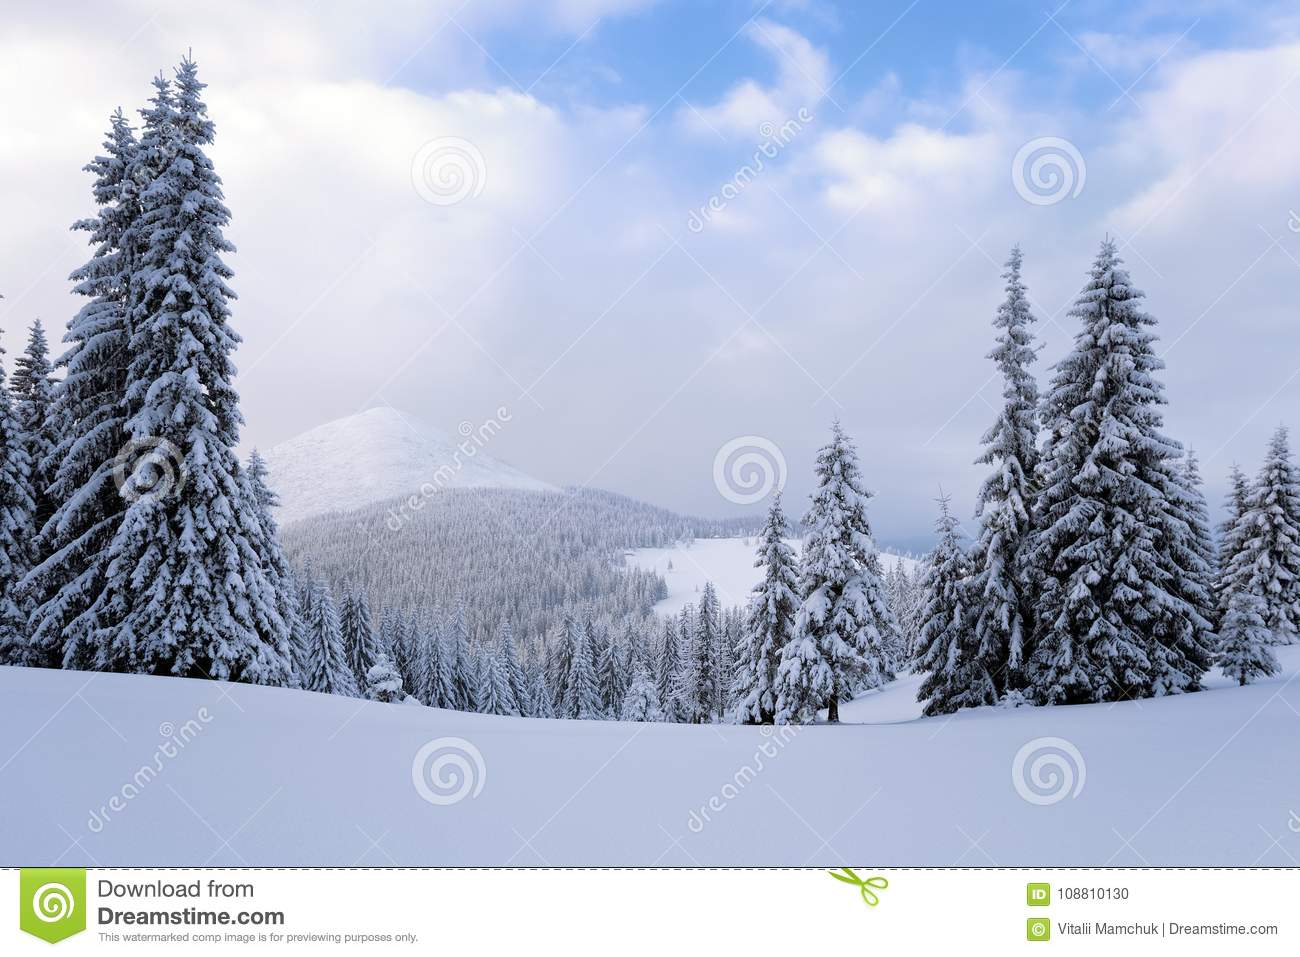 Fantastic fluffy Christmas trees in the snow. Postcard with tall trees, blue sky and snowdrift. Winter scenery in the sunny day.